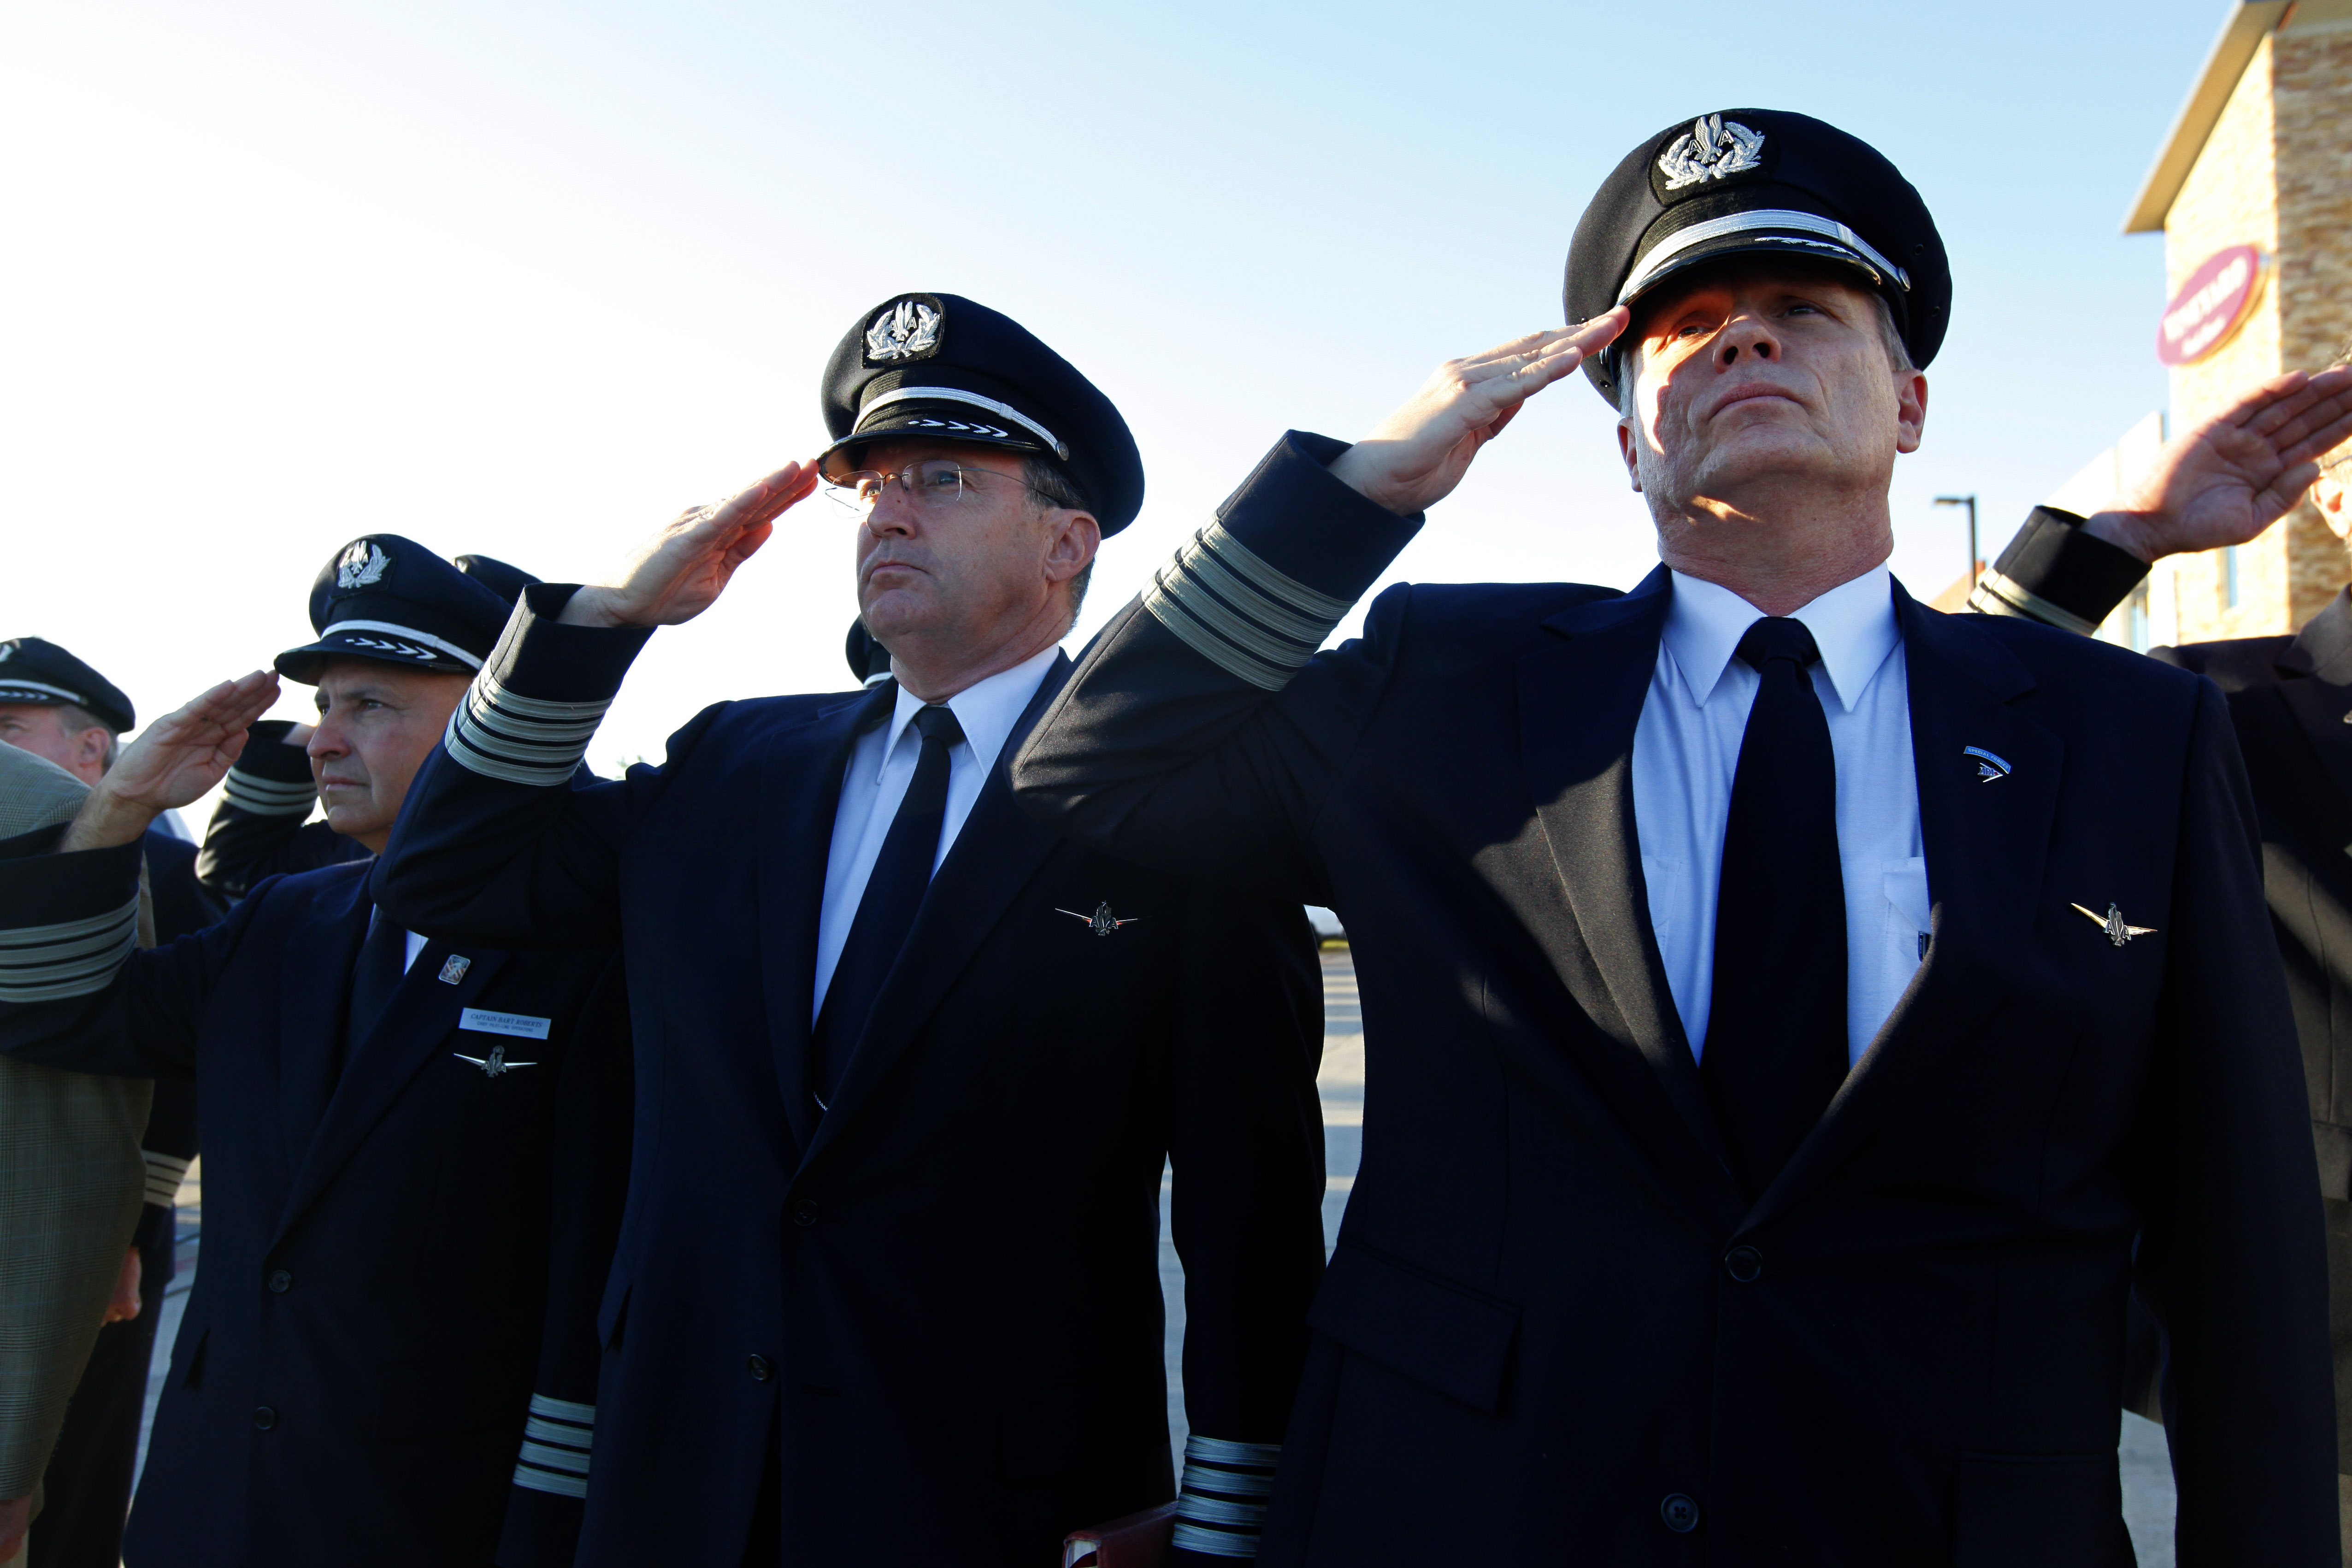 Airline pilots Capt. Anthony Chapman (right) and Capt. Paul Evans salute with others as the U.S. flag is lowered to half staff at the 9/11 Flight Crew Memorial in Grapevine, Texas. Flight crews gathered at the memorial near Dallas-Fort Worth airport to remember the flight crews lost in the Sept. 11 attacks.